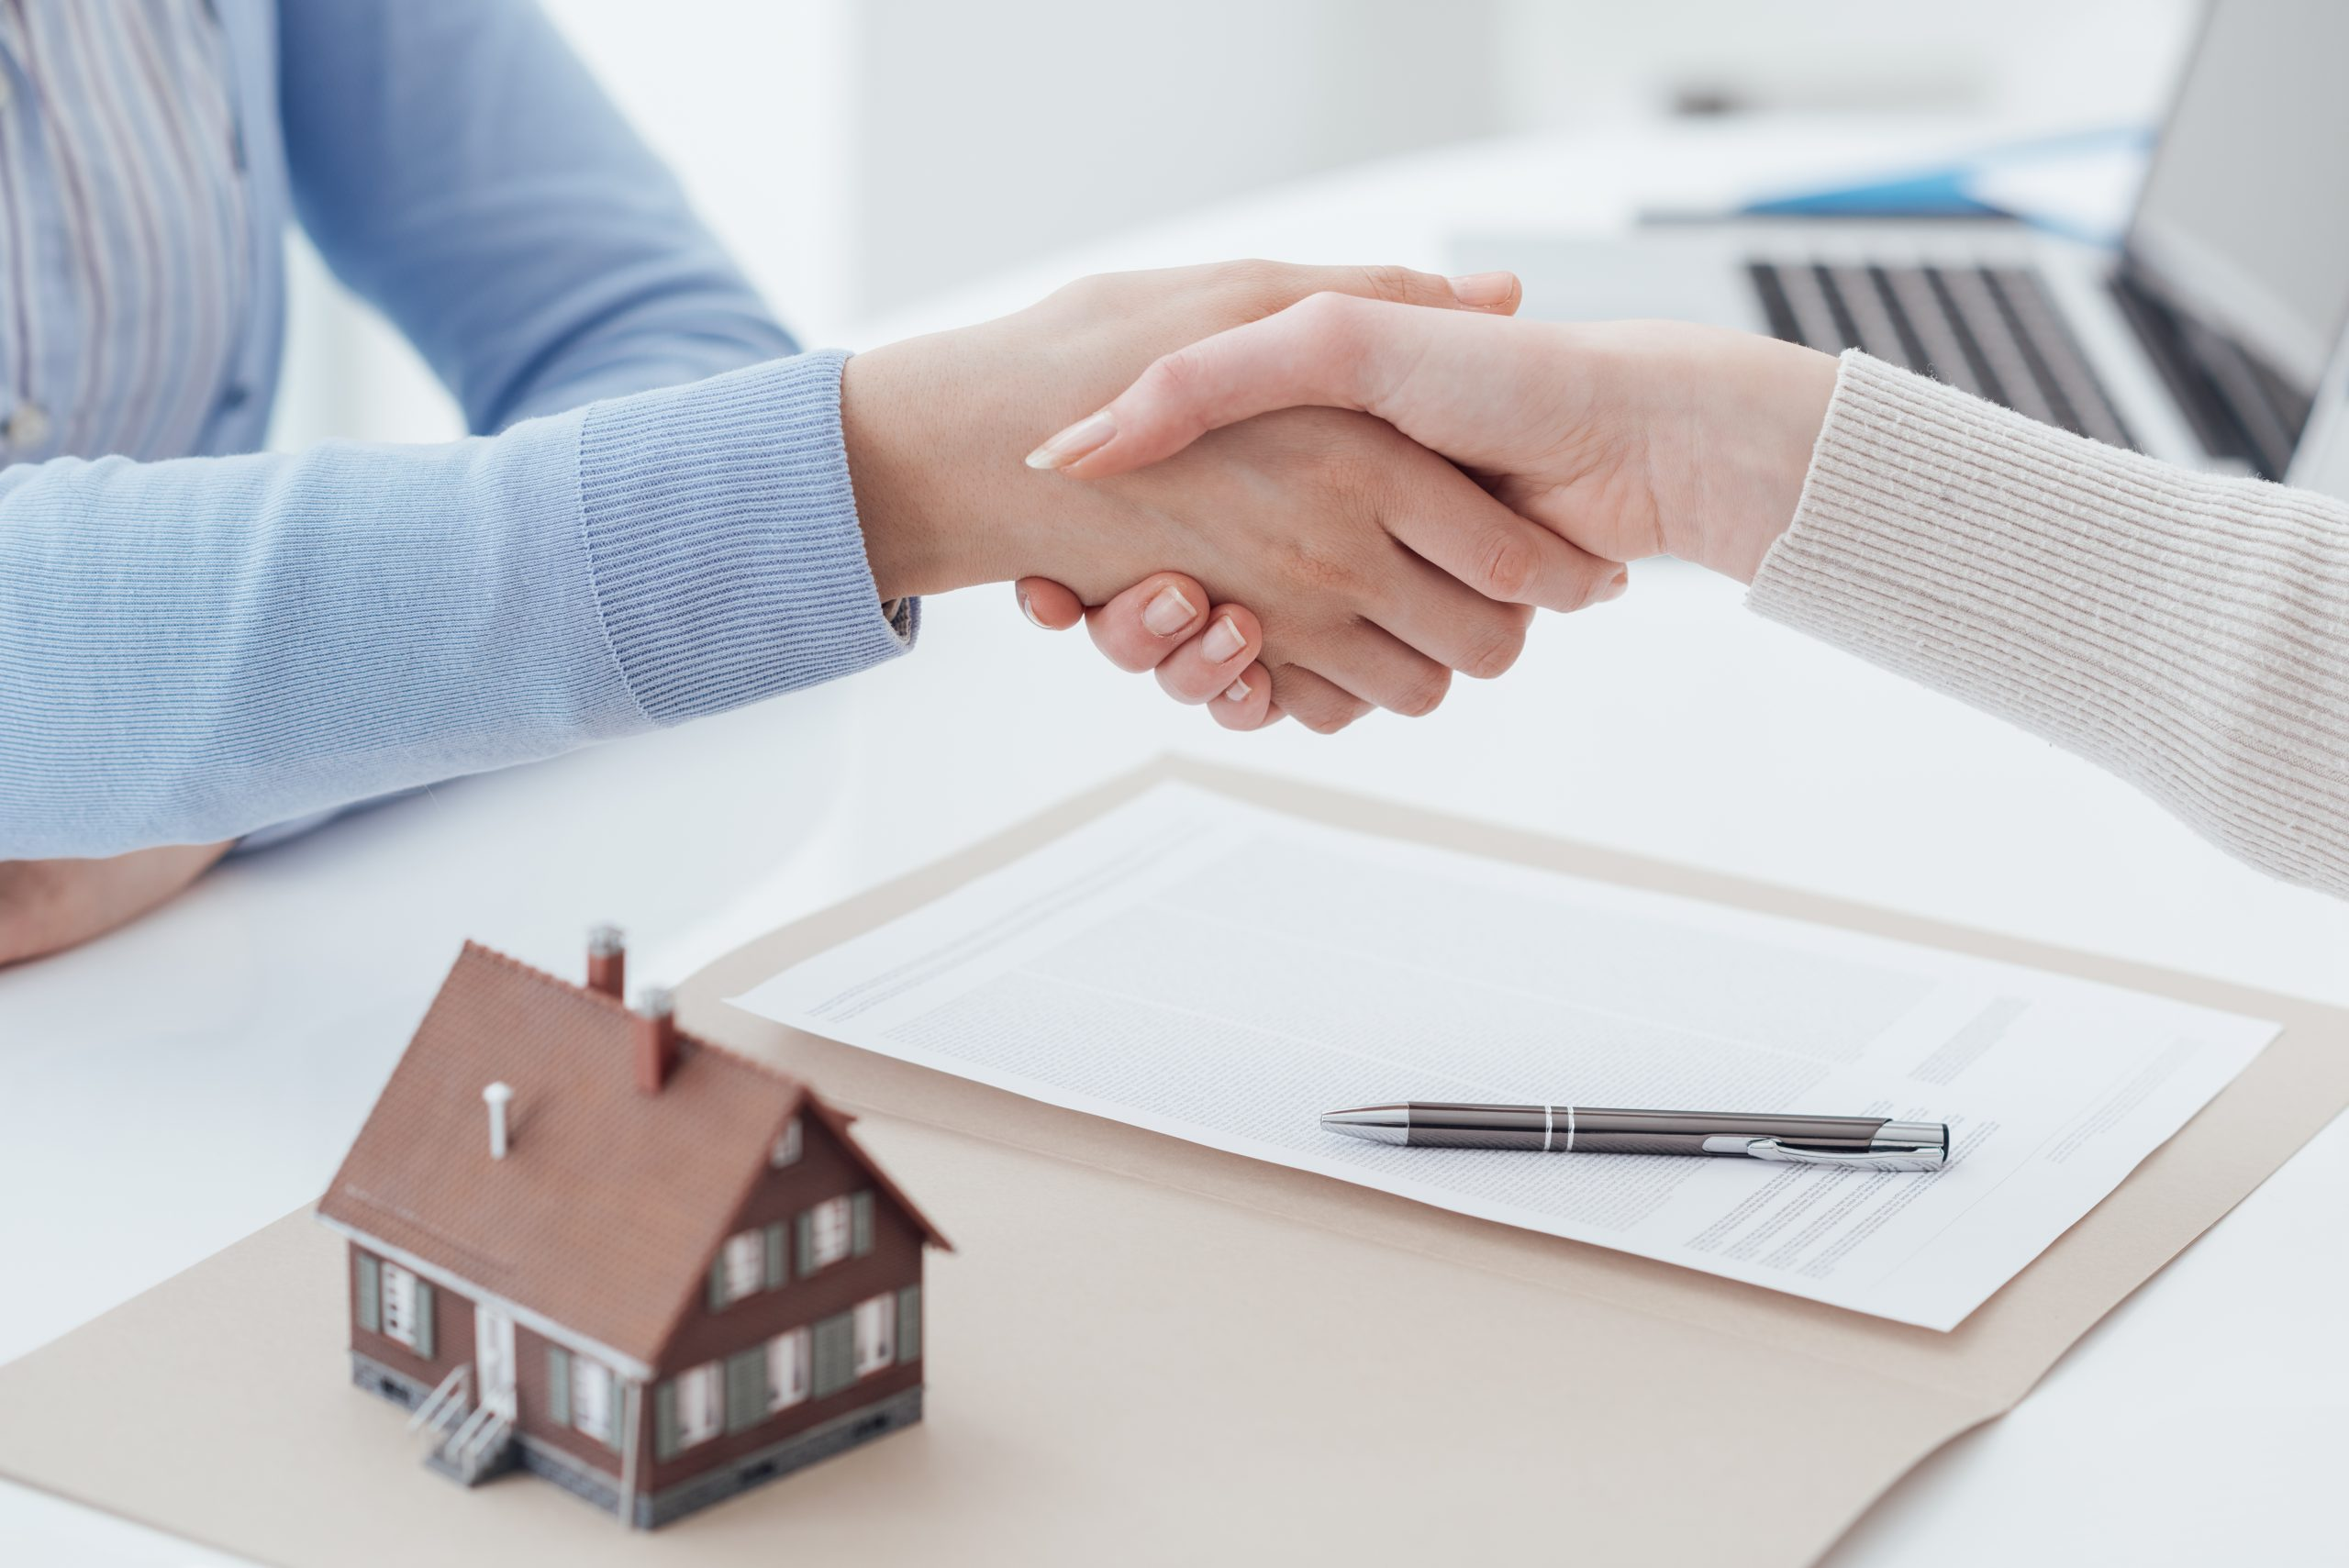 Pros and cons of mortgage broker